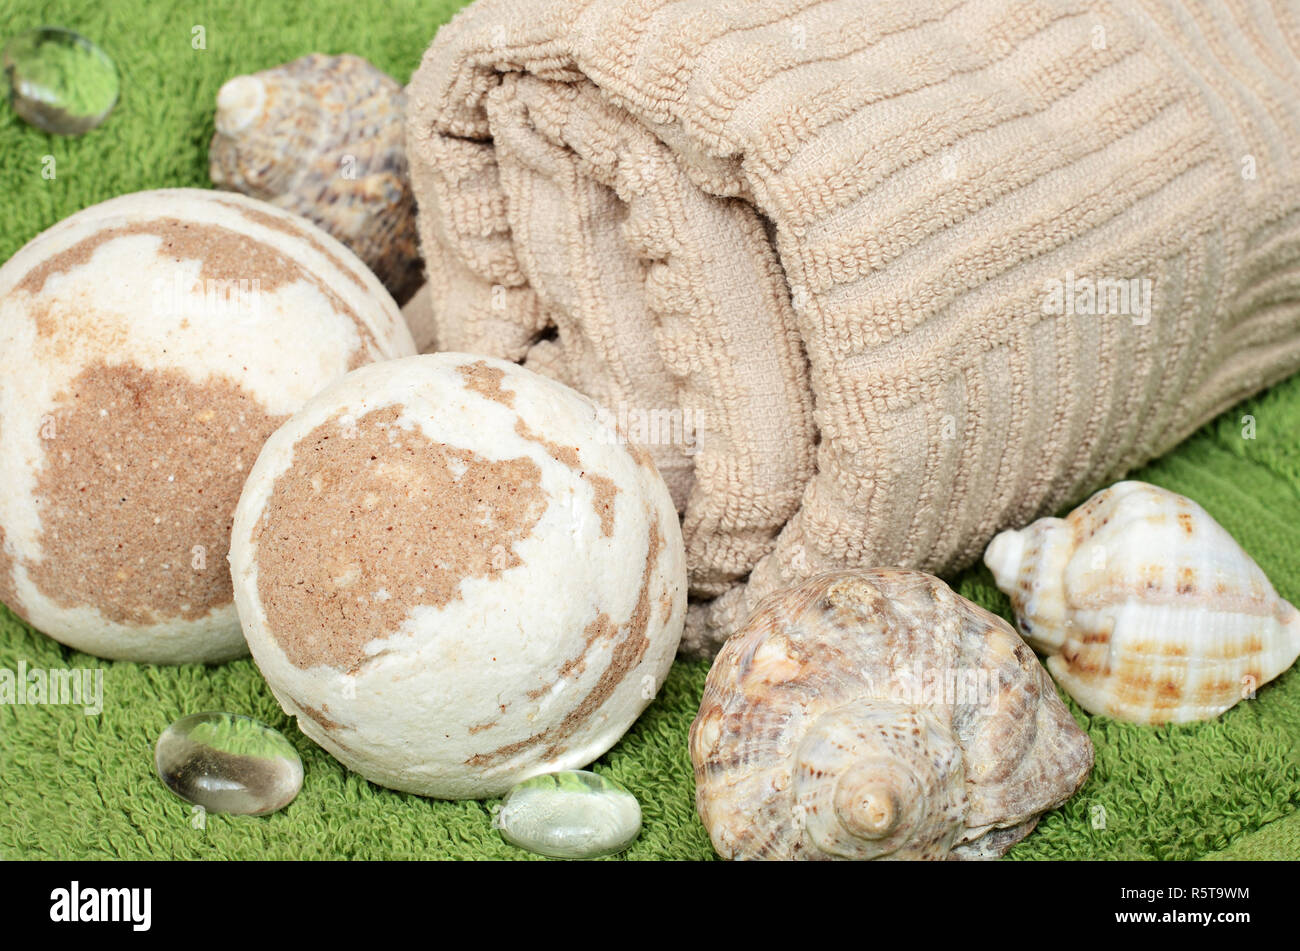 Towel and bath bomb for for relaxation and skin care - Stock Image